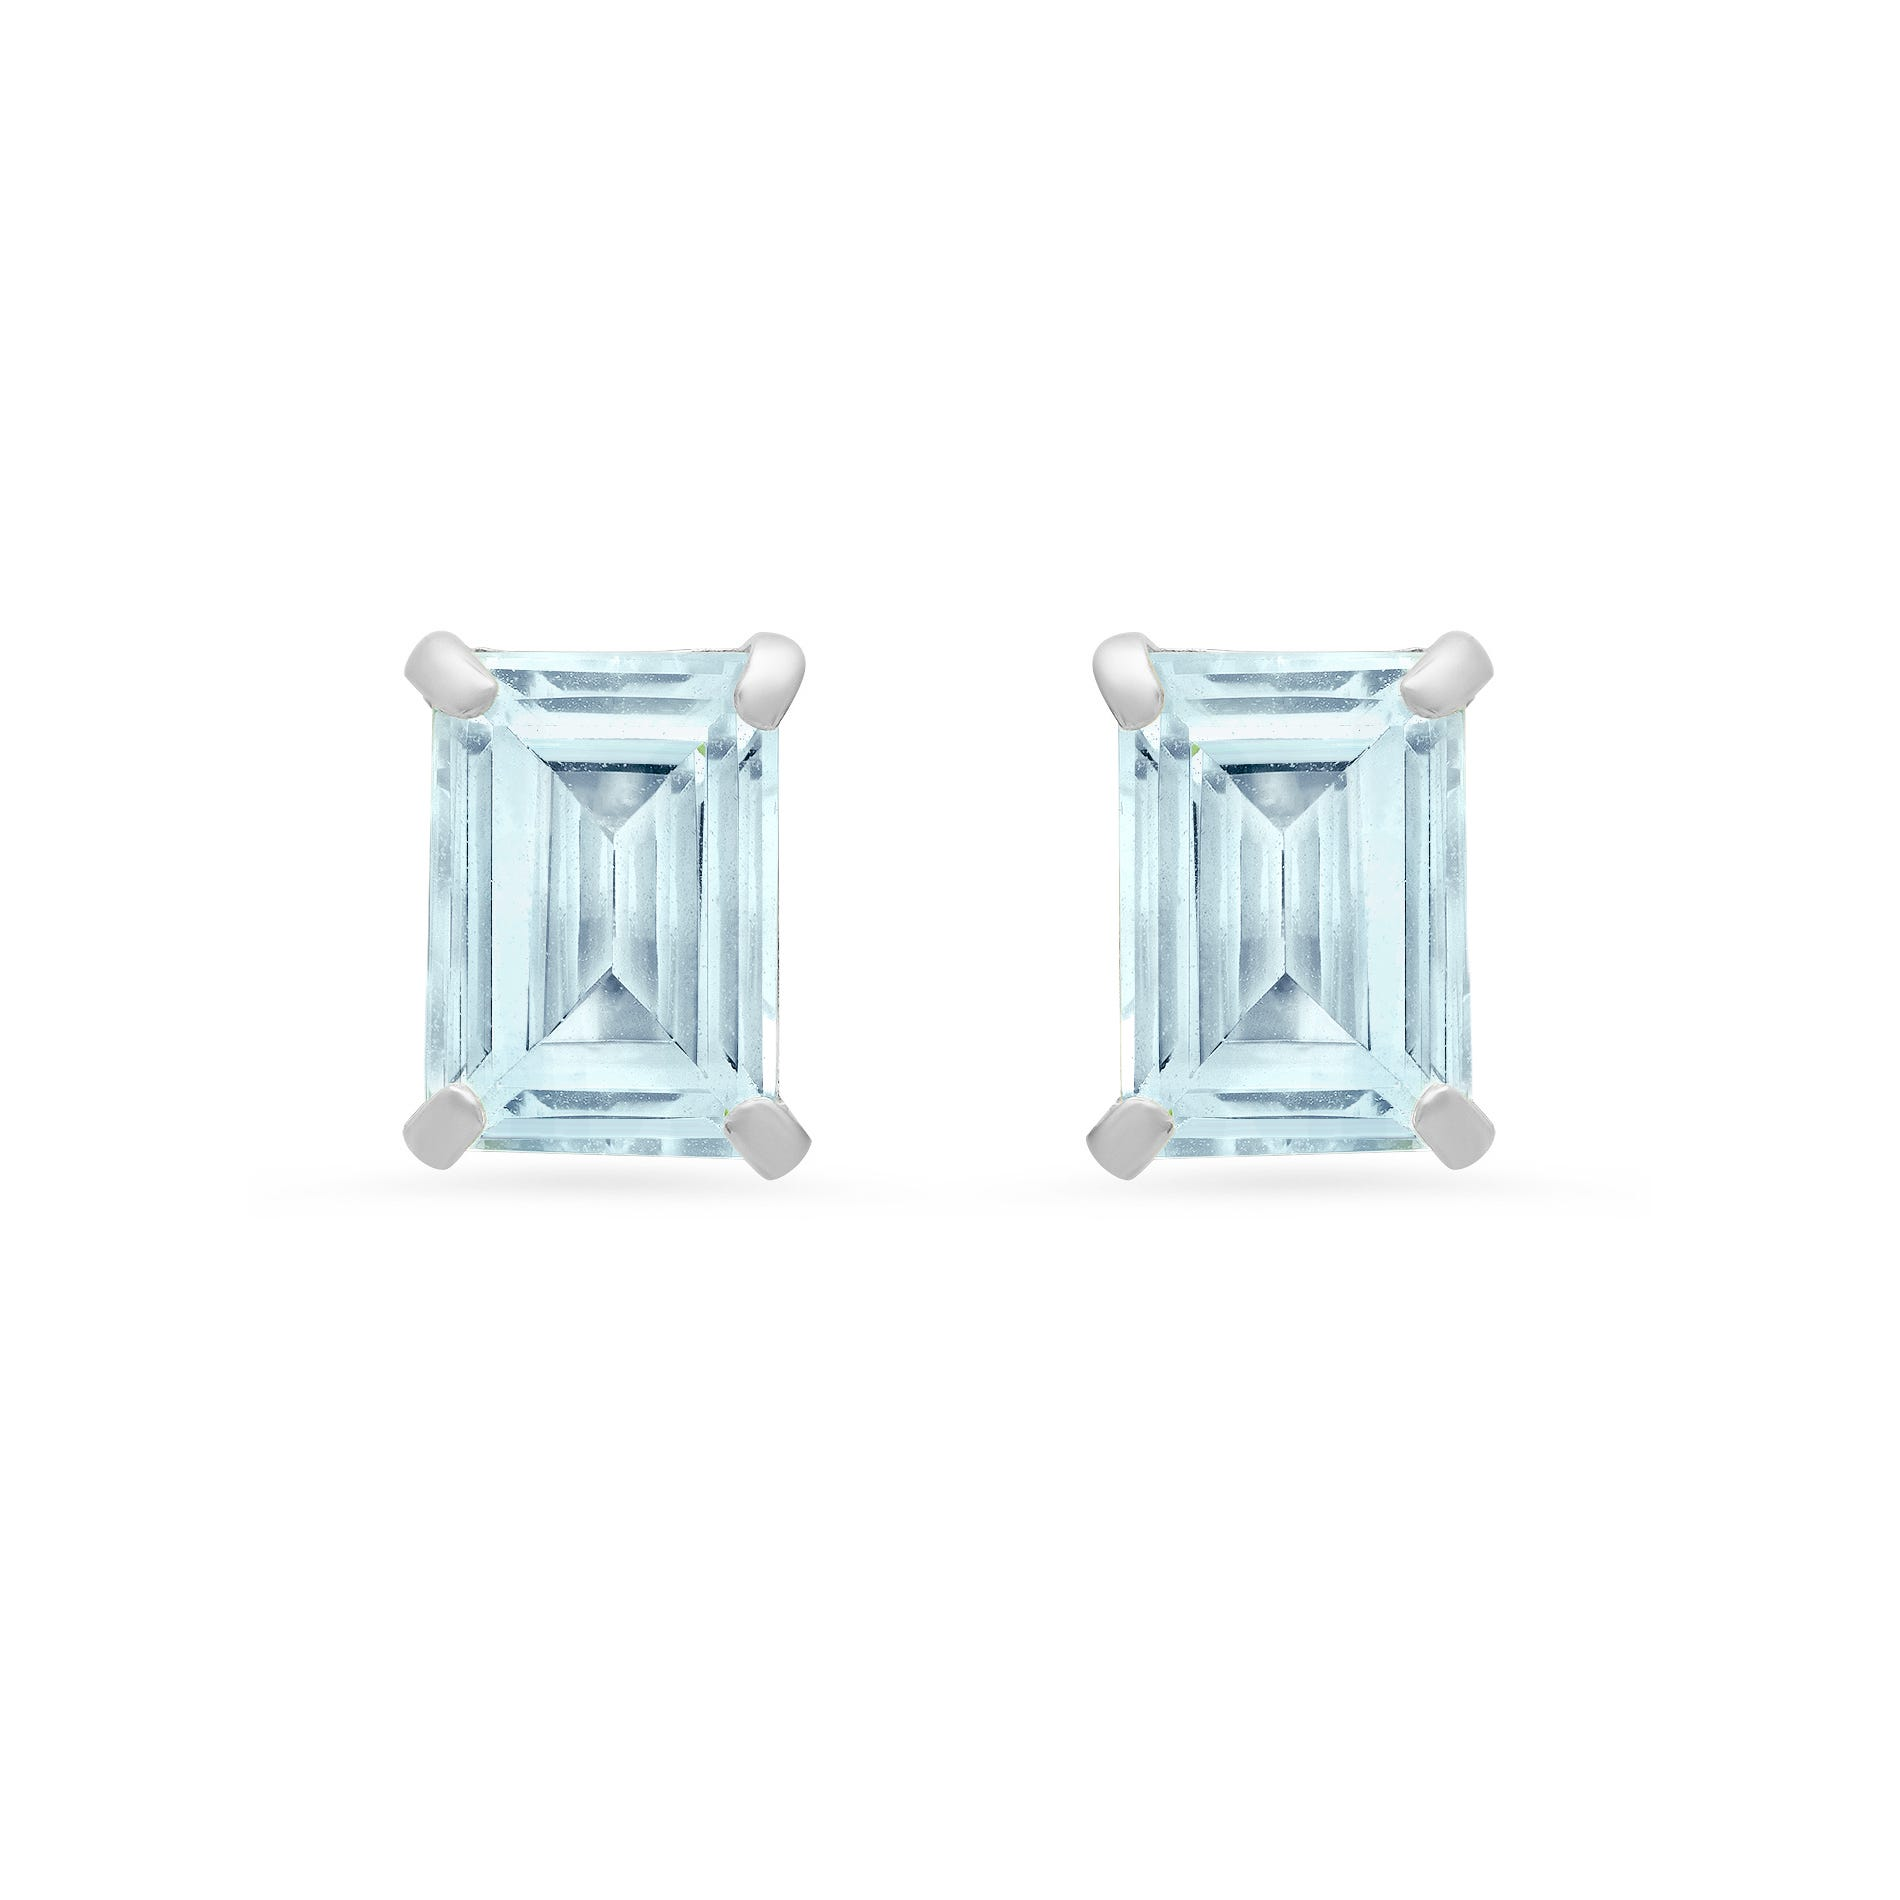 Emerald-Cut Aquamarine Solitaire Stud Earrings in 14k White Gold